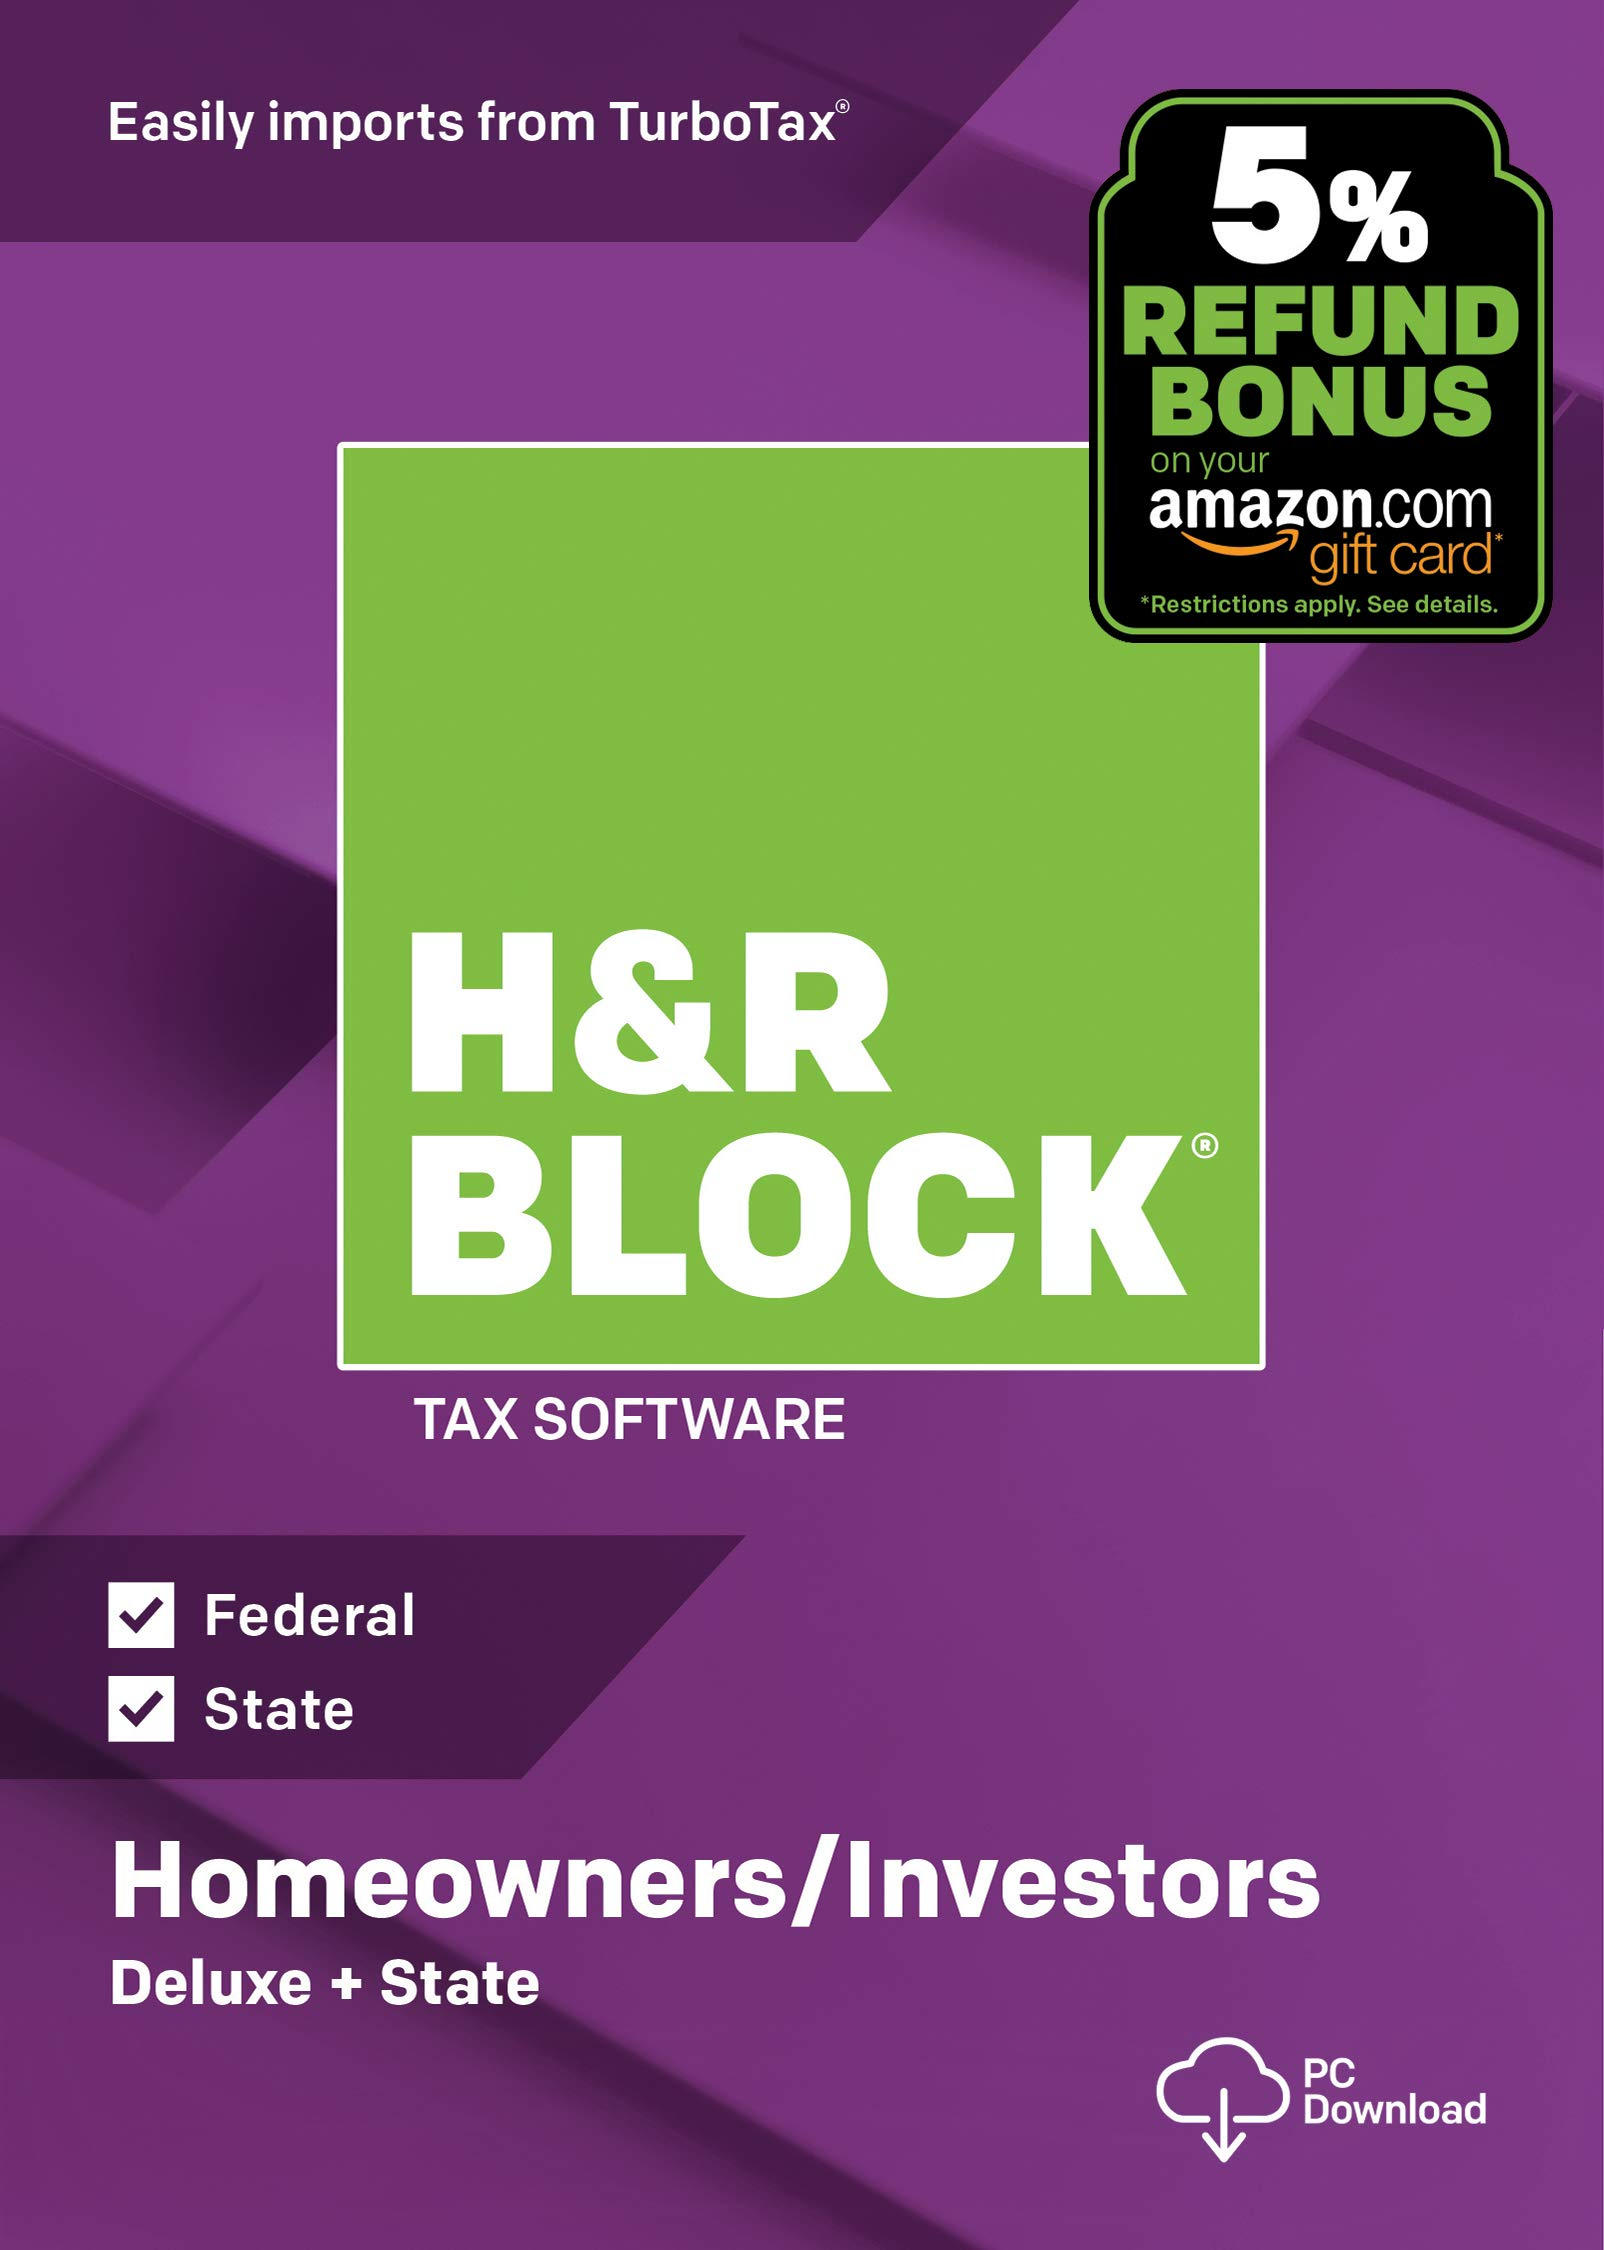 H&R Block Tax Software Deluxe + State 2018 with 5% Refund Bonus Offer [Amazon Exclusive] [PC Download] by H&R Block